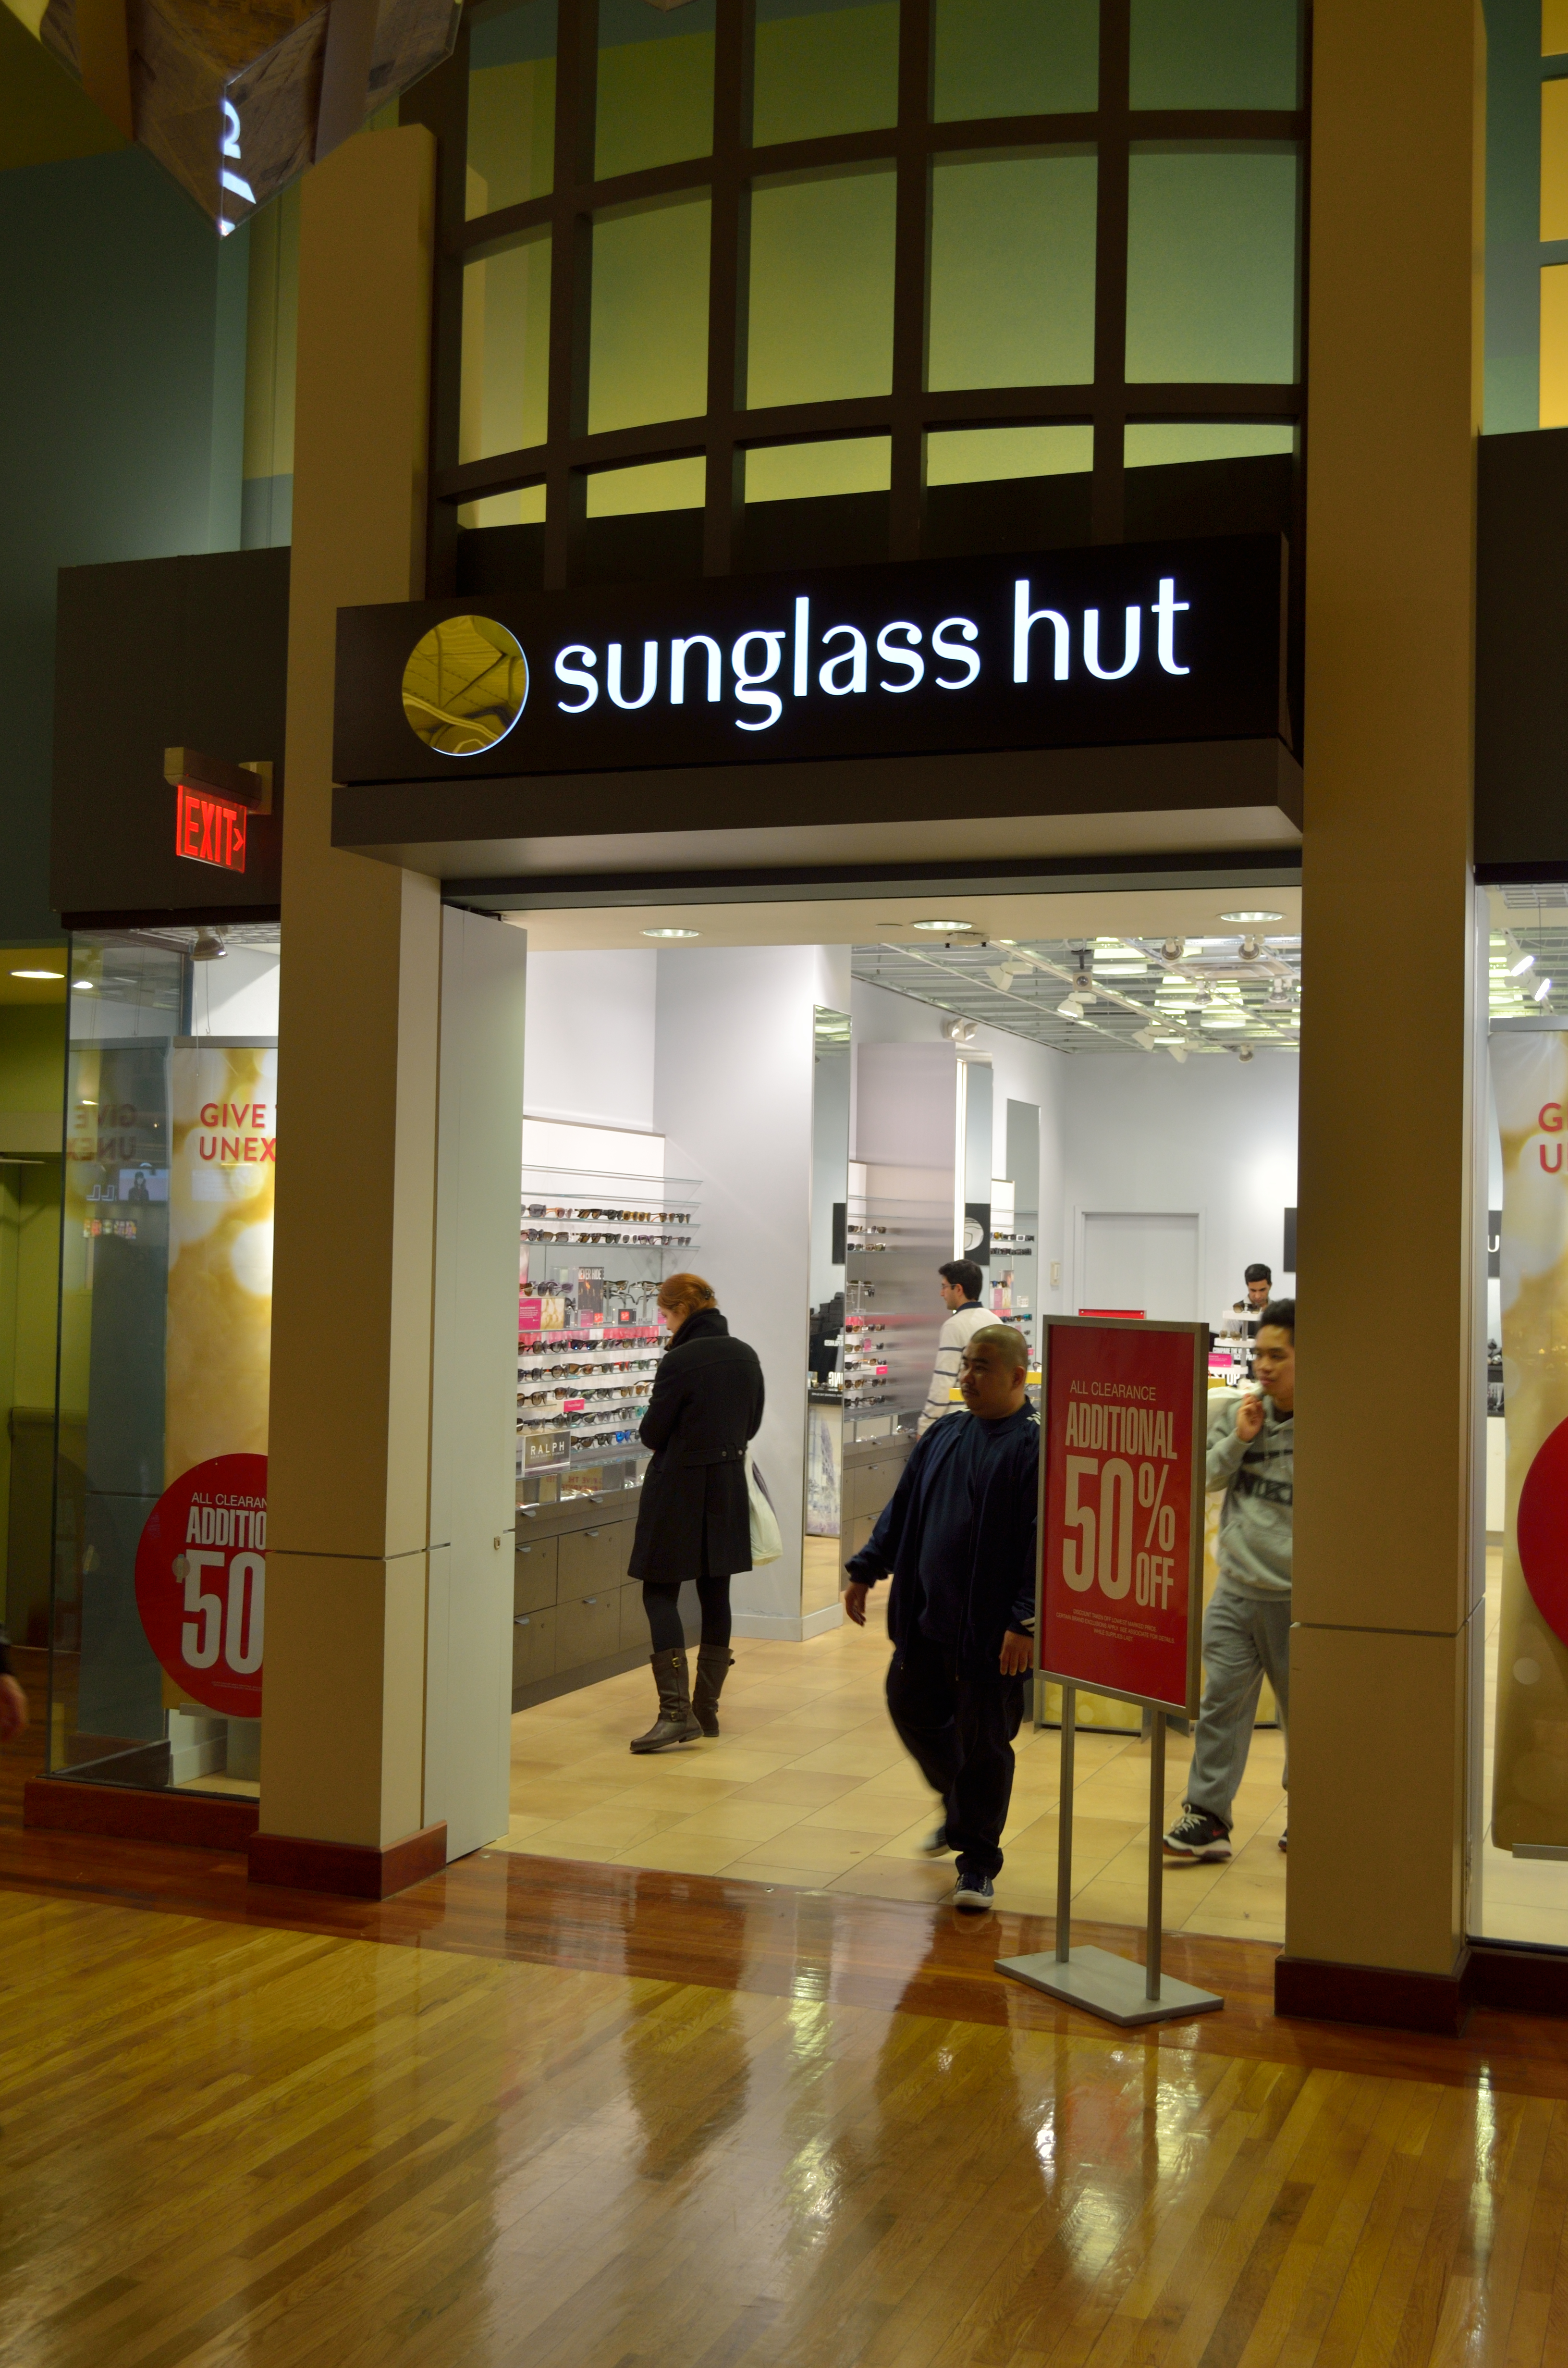 d69f69114b Sunglass Hut - Wikipedia